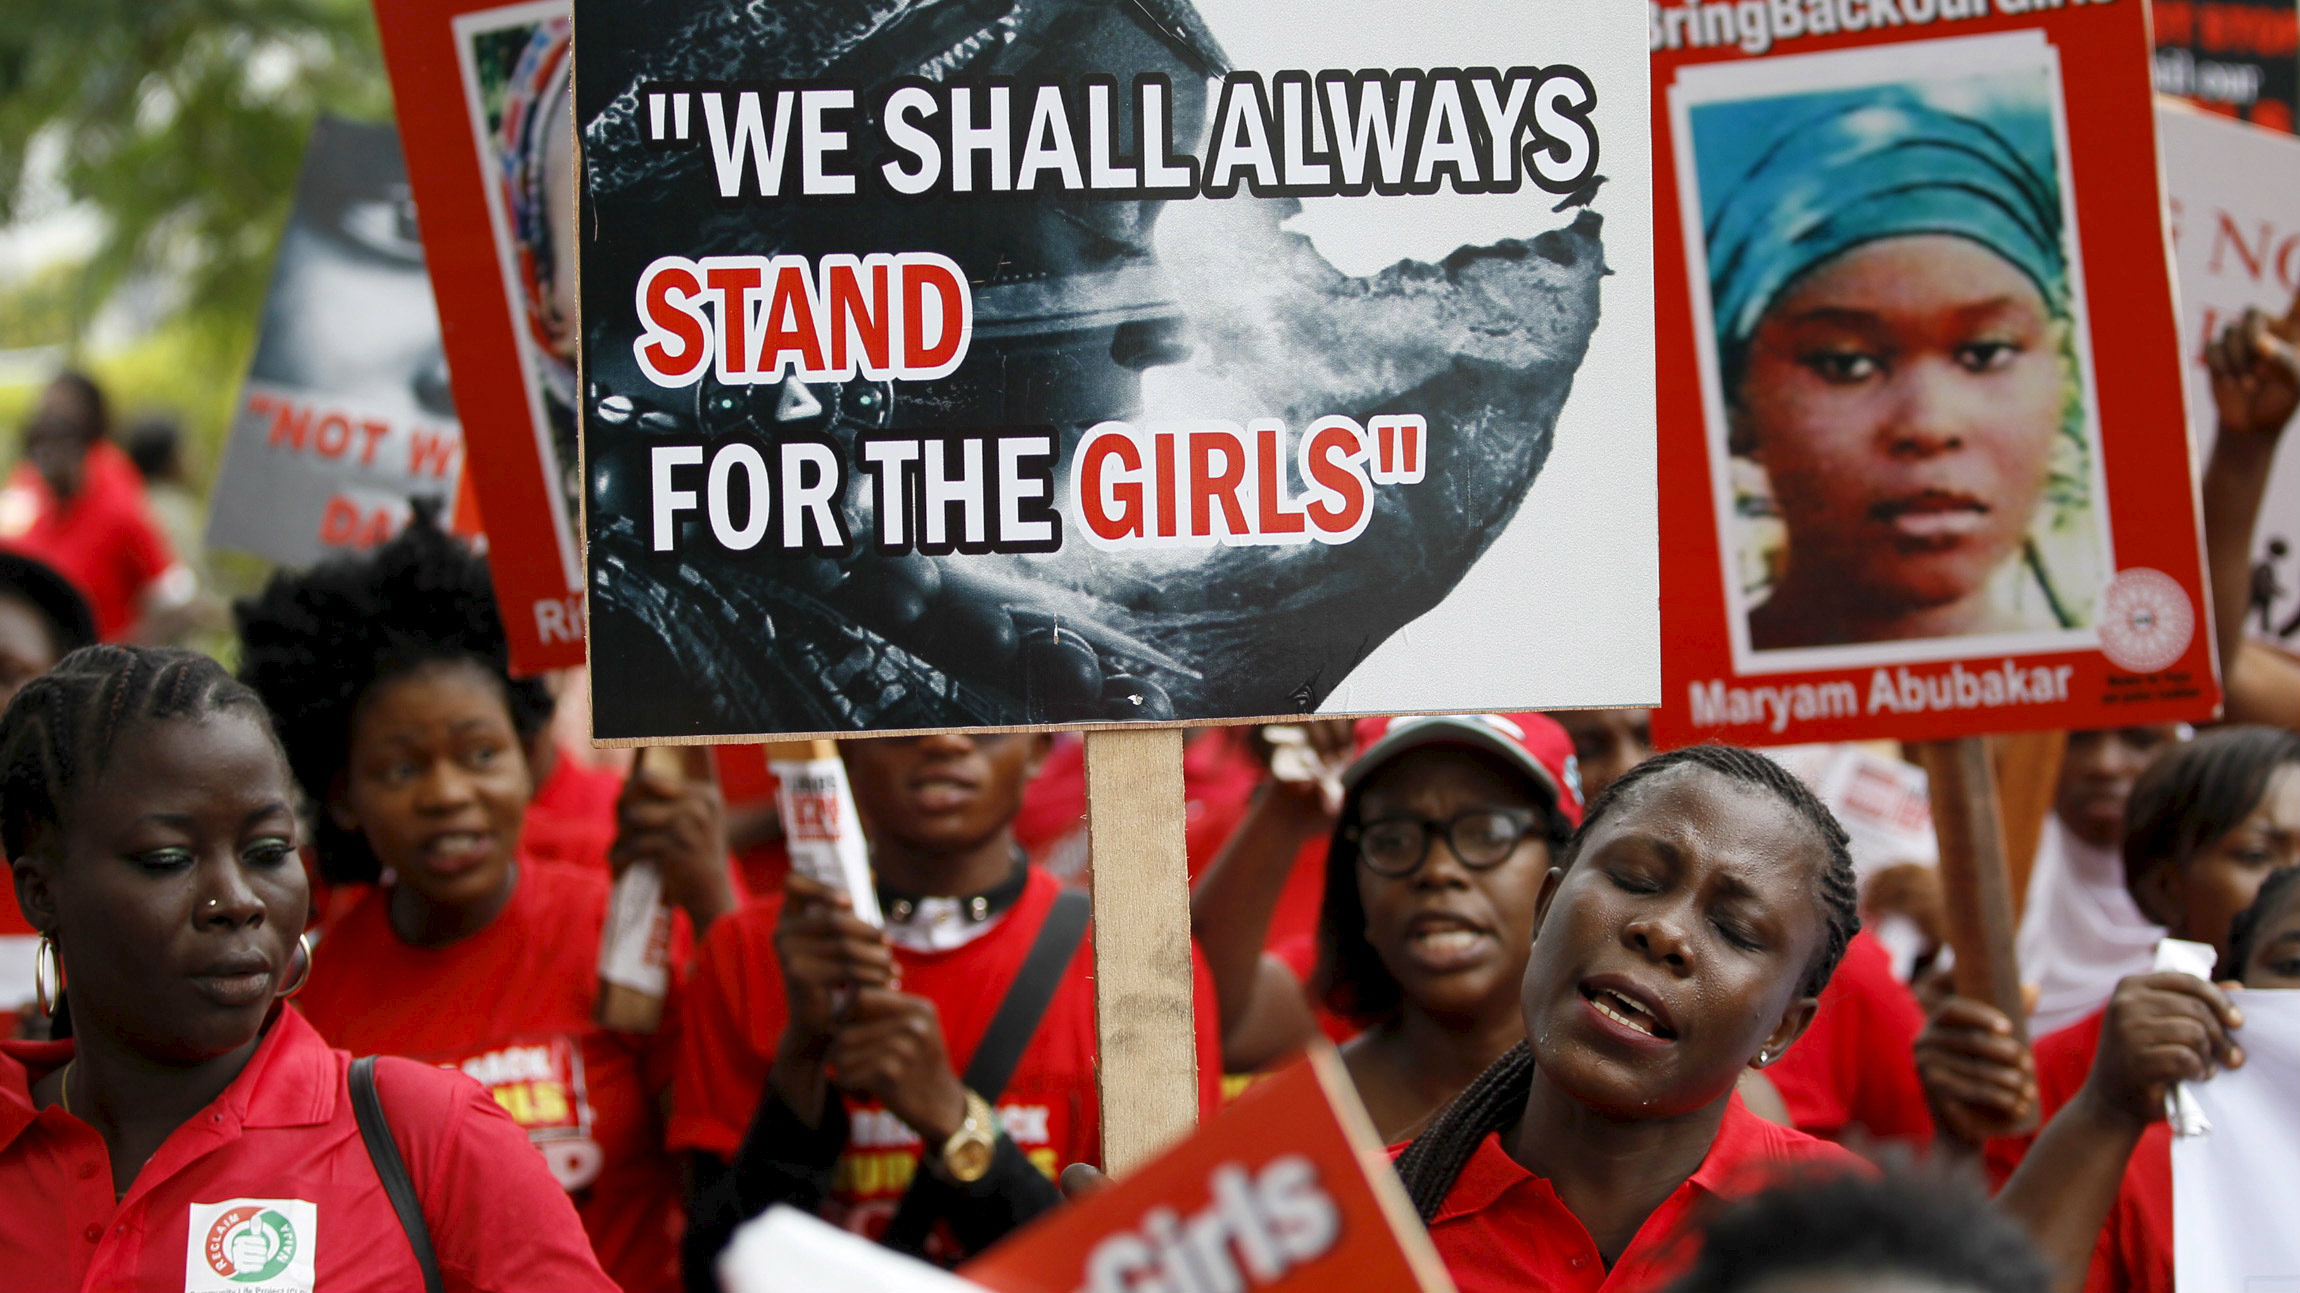 Bring Back Our Girls (BBOG) campaigners hold banners as they walk during a protest procession marking the 500th day since the abduction of girls in Chibok, along a road in Lagos August 27, 2015